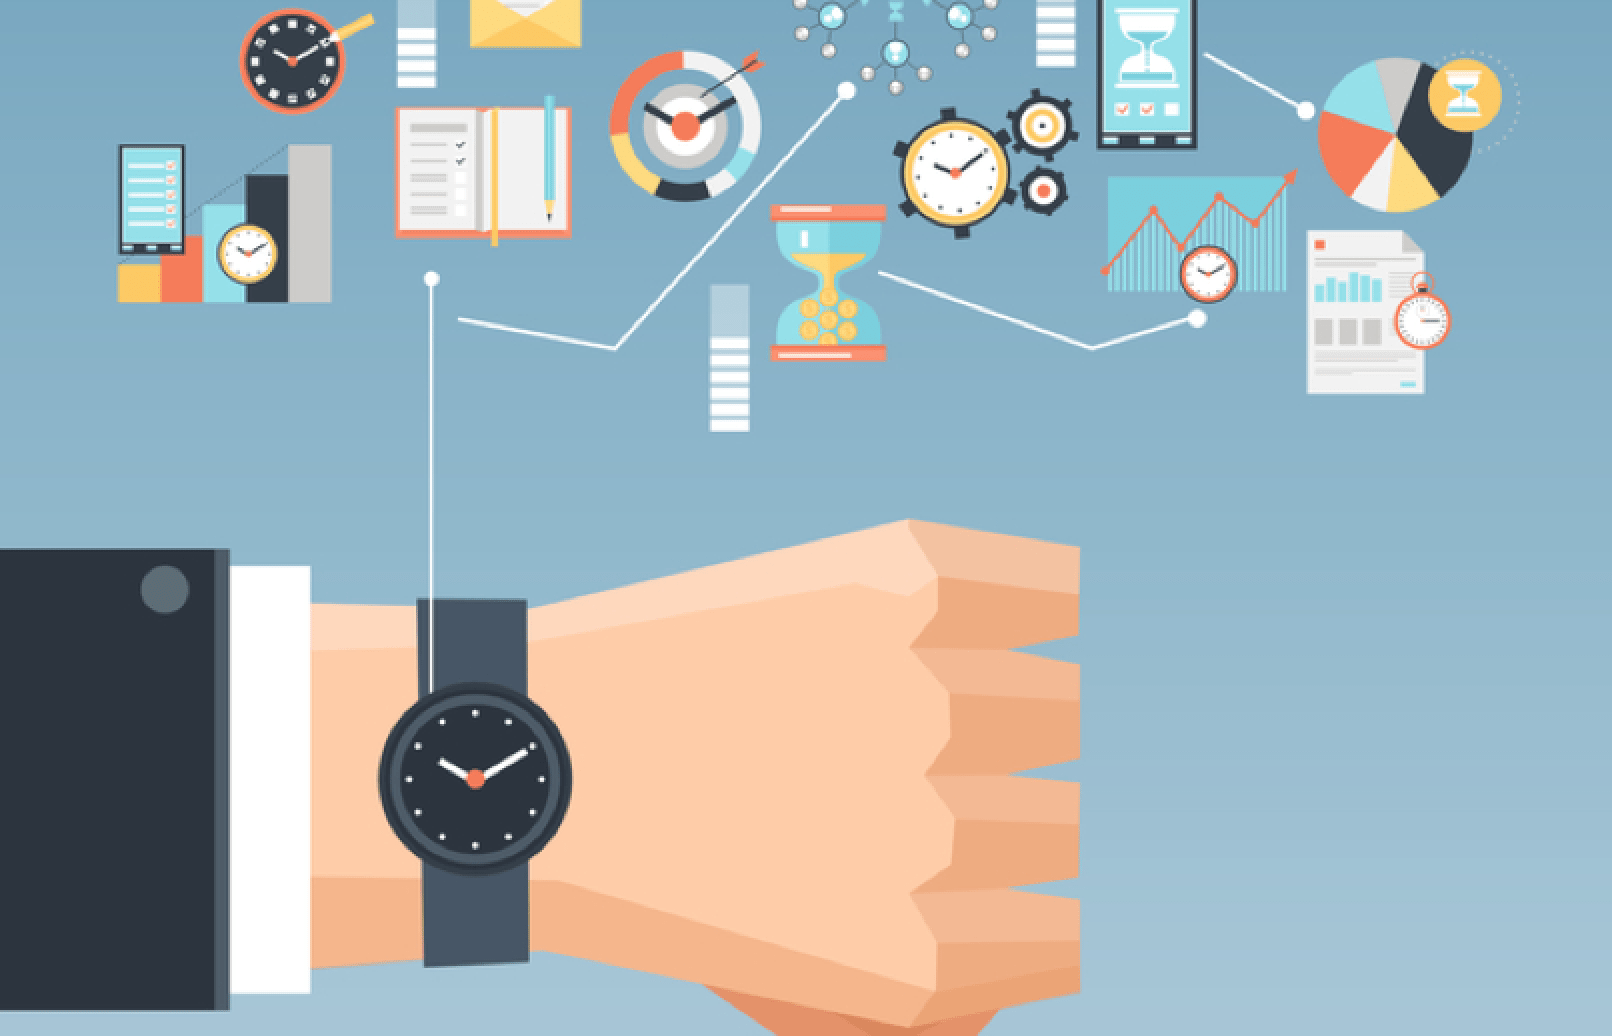 Employee Timesheet Management Tips for Businesses from Top Project Managers